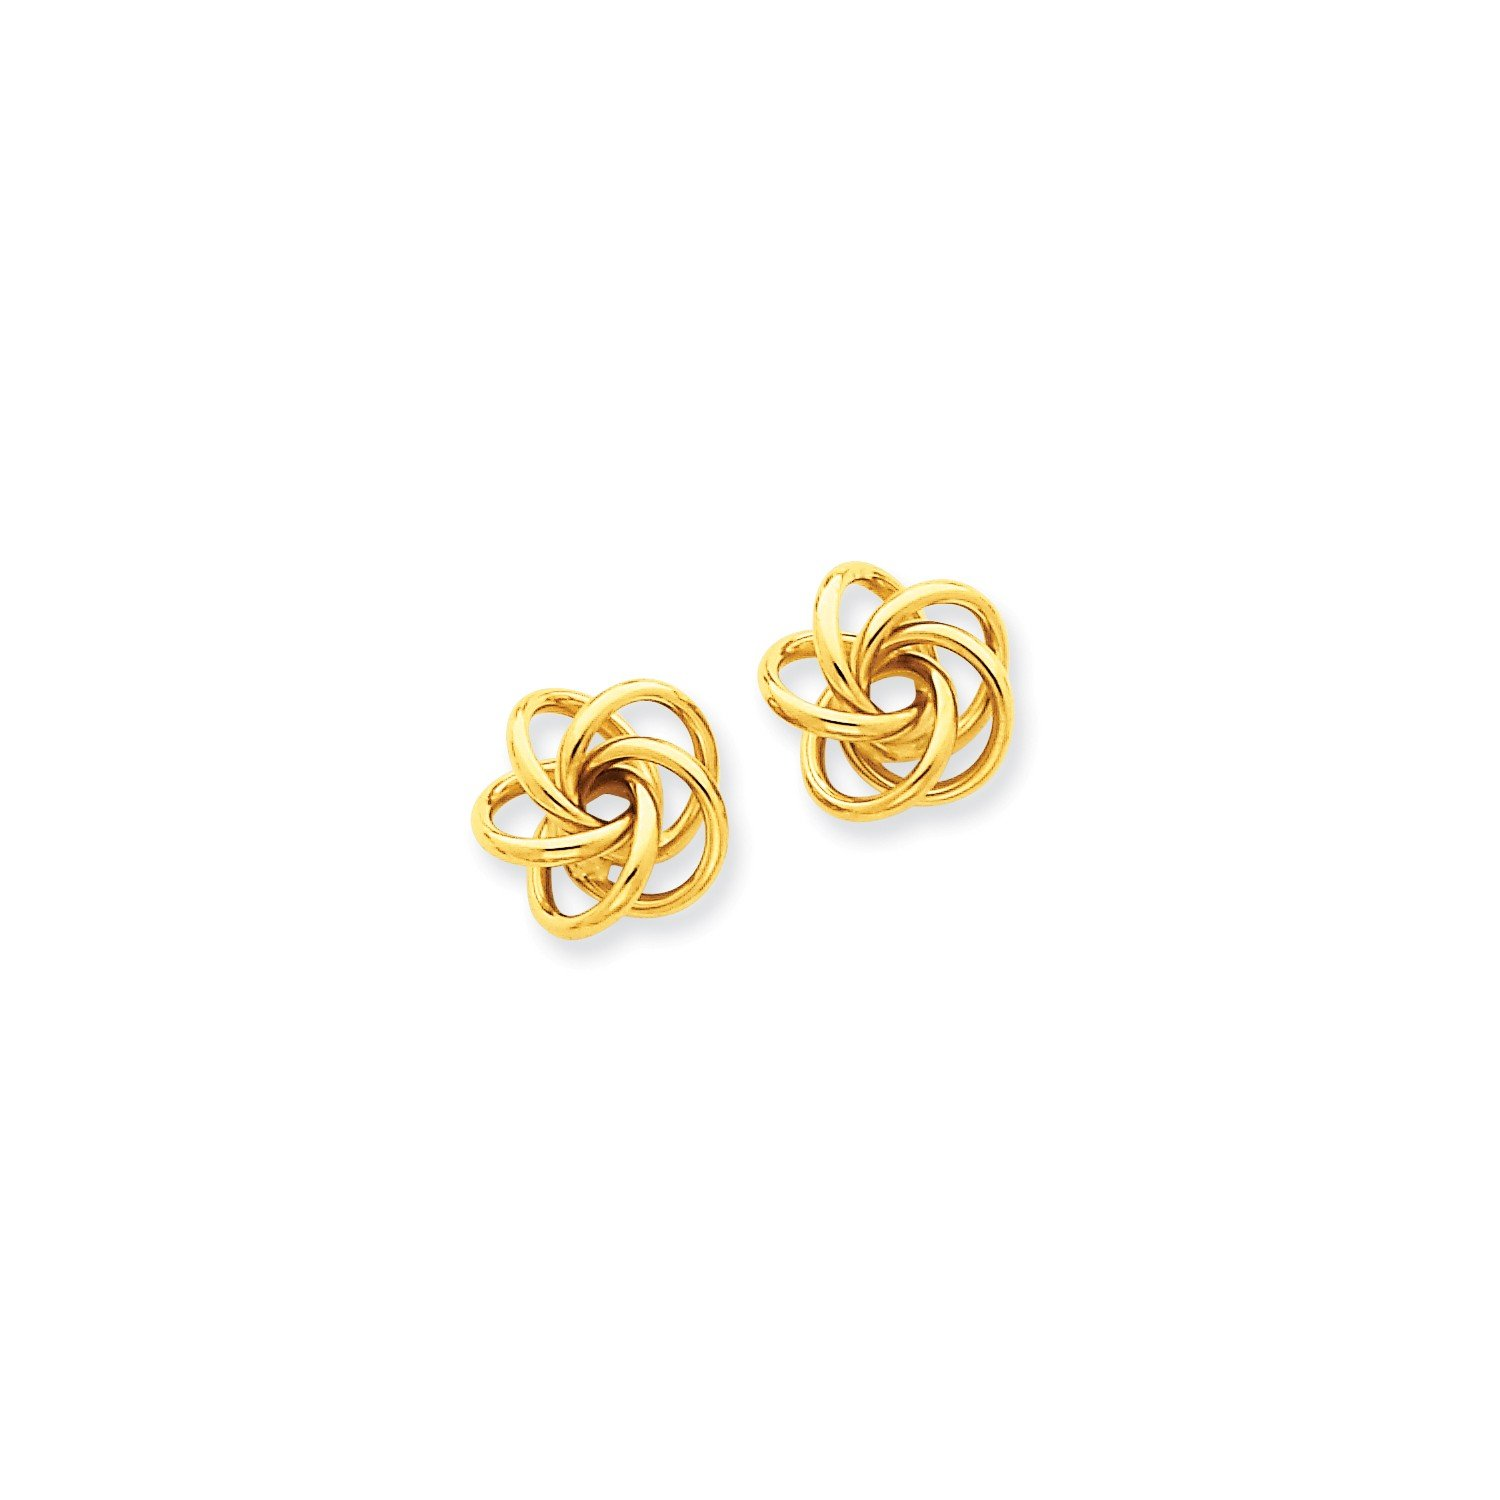 Roy Rose Jewelry 14K Yellow Gold Love Knot Earrings 10mm length